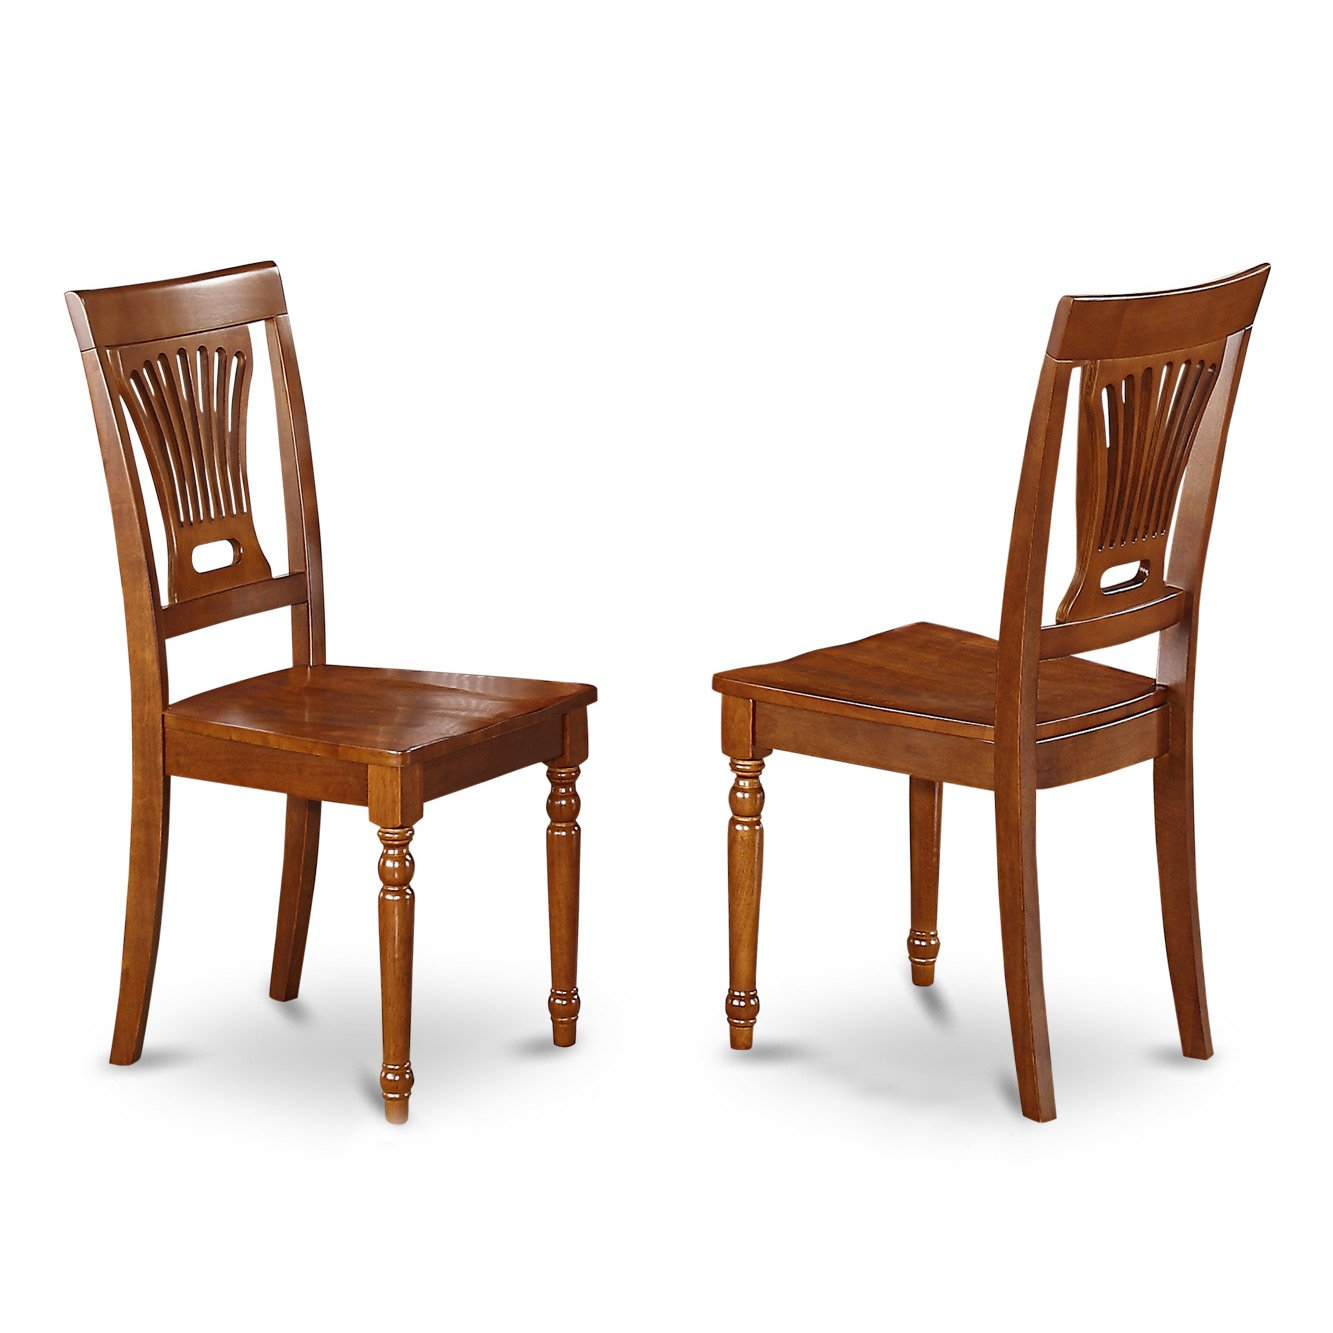 East West Furniture PVC-SBR-W Kitchen/Dining Chair Set with Wood Seat, Saddle Brown Finish, Set of 2